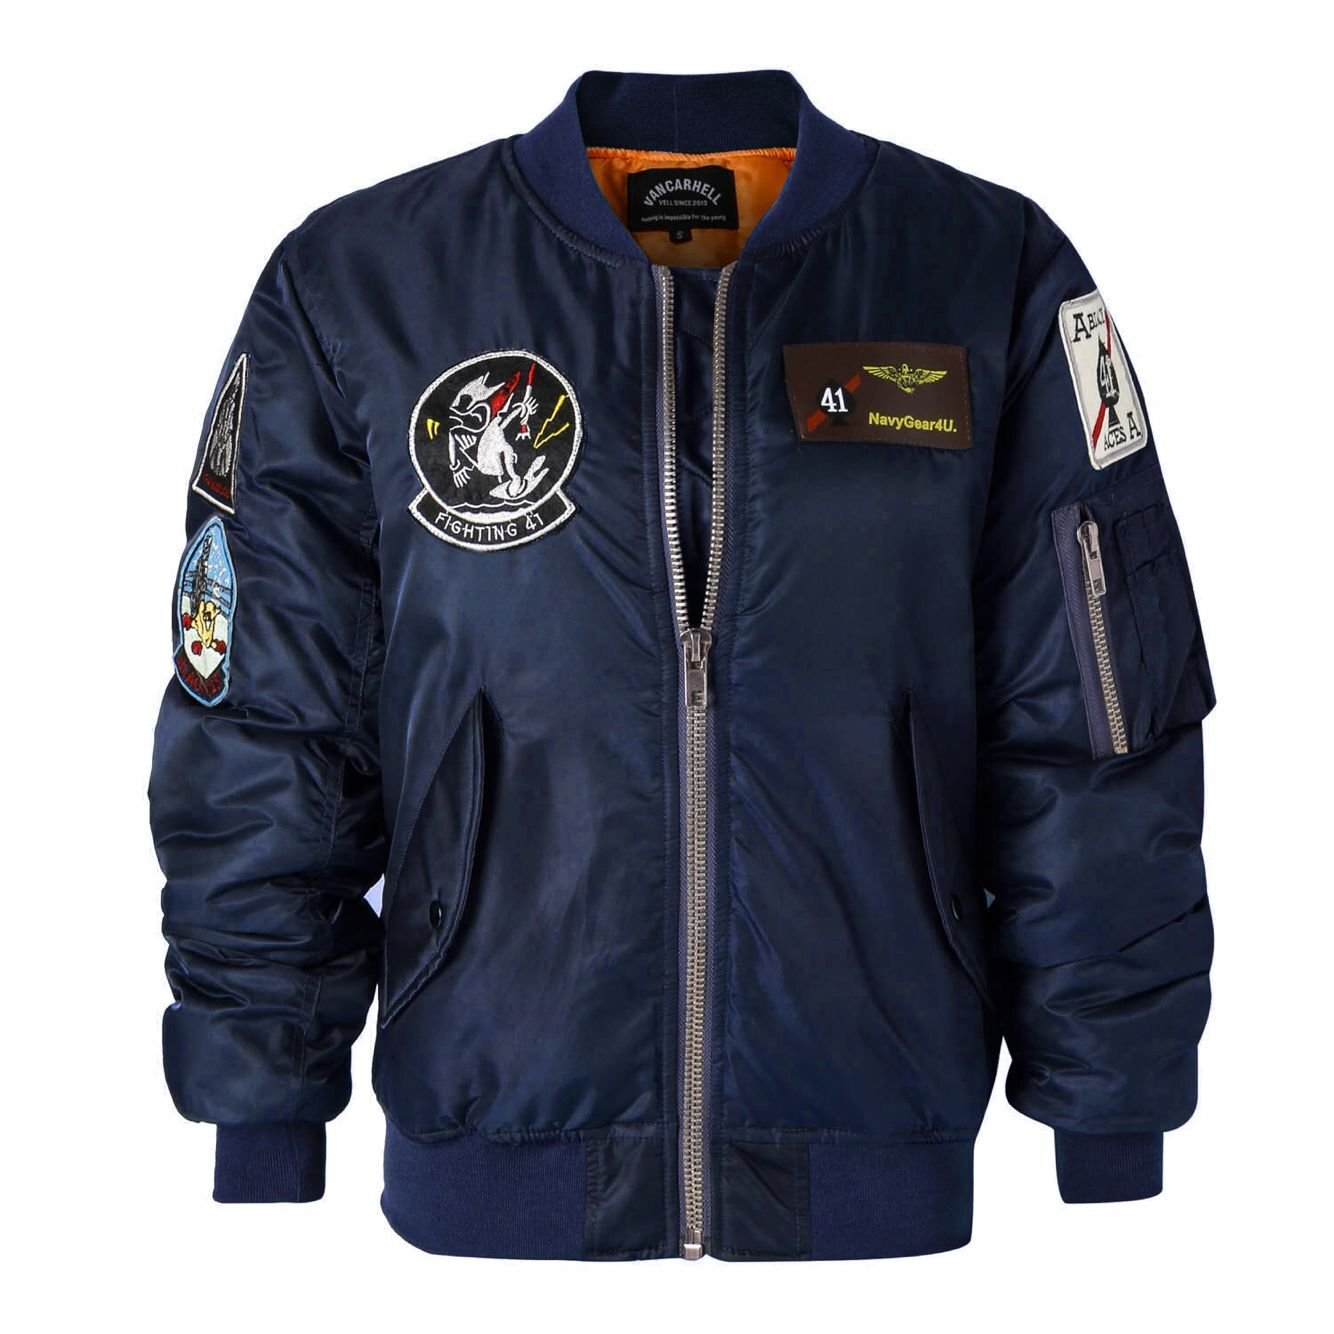 23e807da179 Top1  AVIDACE Classic Bomber Jacket Women Nylon Quilted with Patches